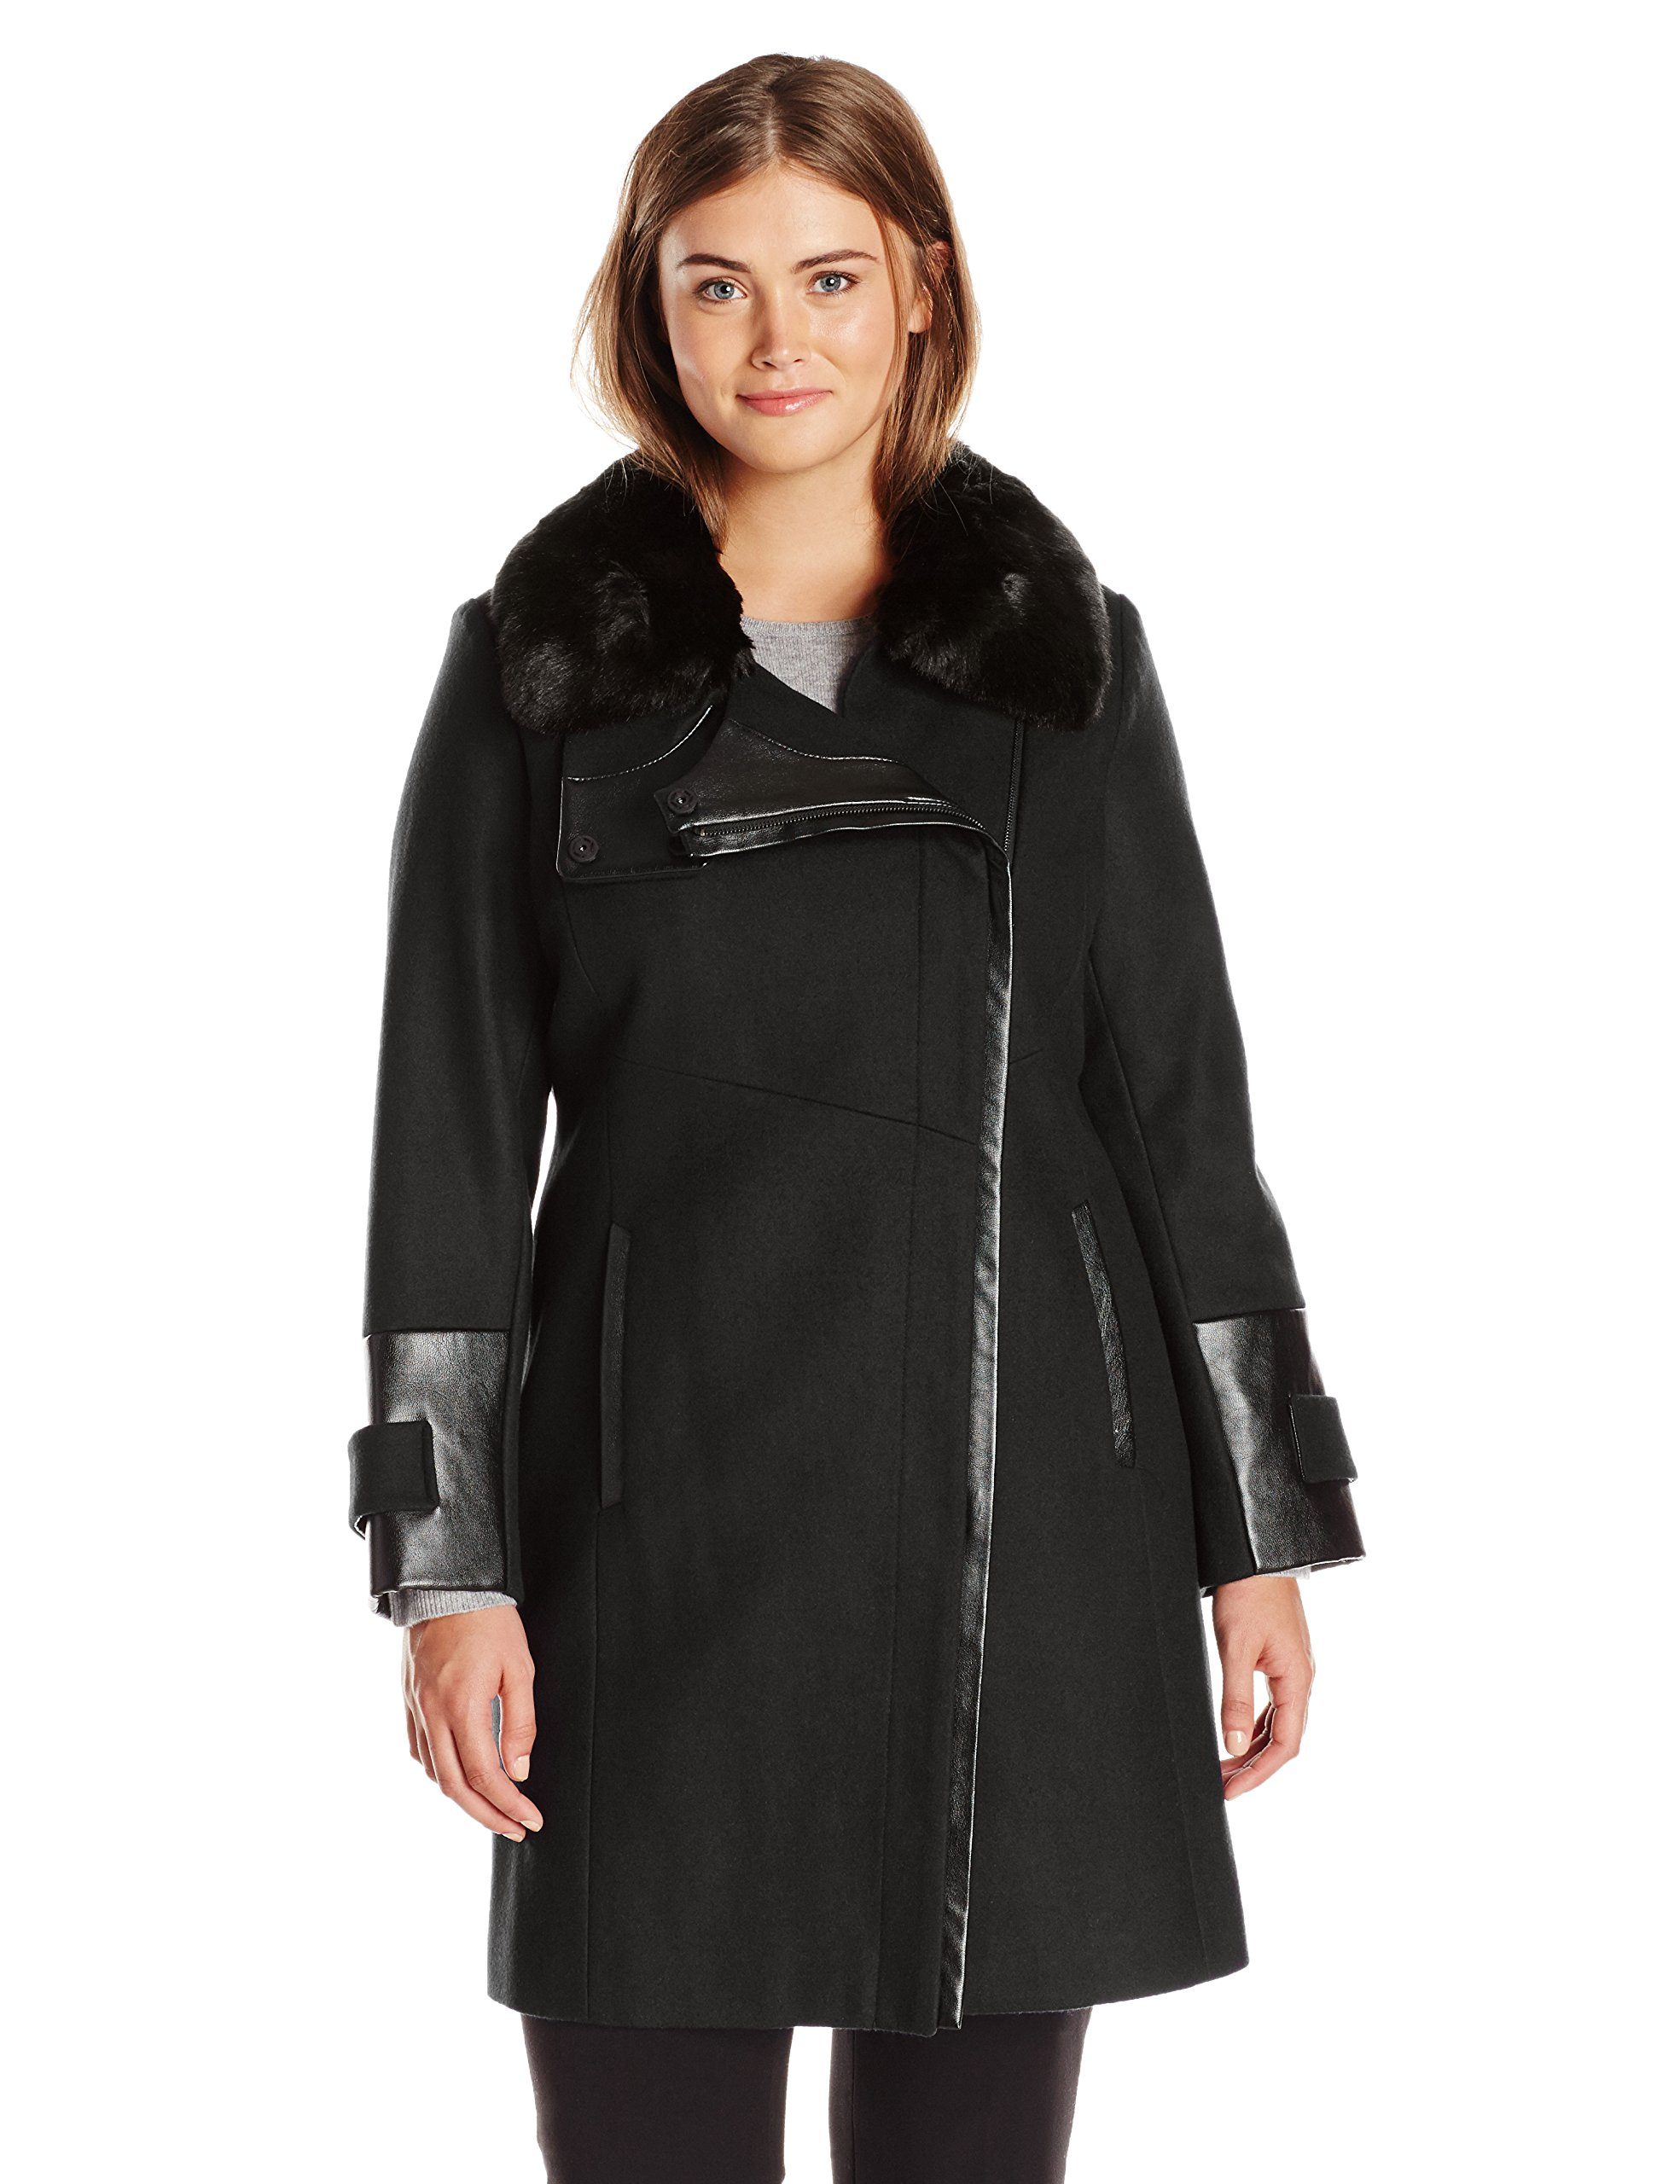 Via Spiga Women's Plus-Size Wool Coat With Faux Fur Collar, Black, 18W